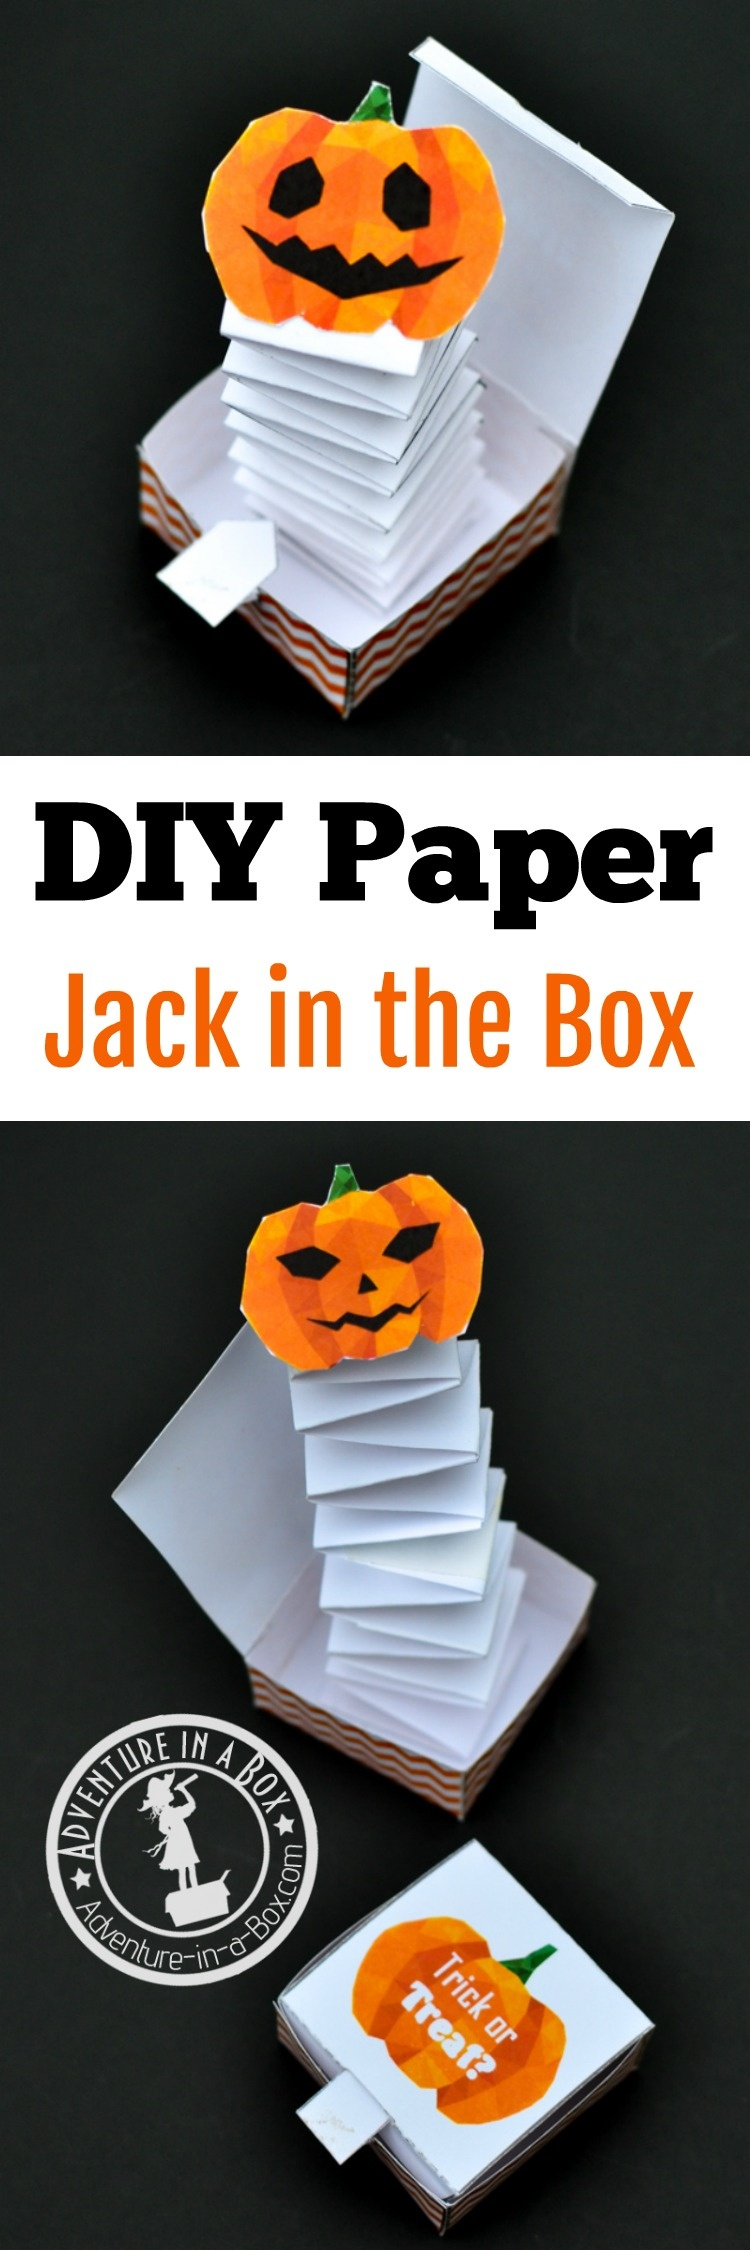 Jack In The Box Paper Toy With A Free Printable Template | Adventure - Free Printable Halloween Paper Crafts